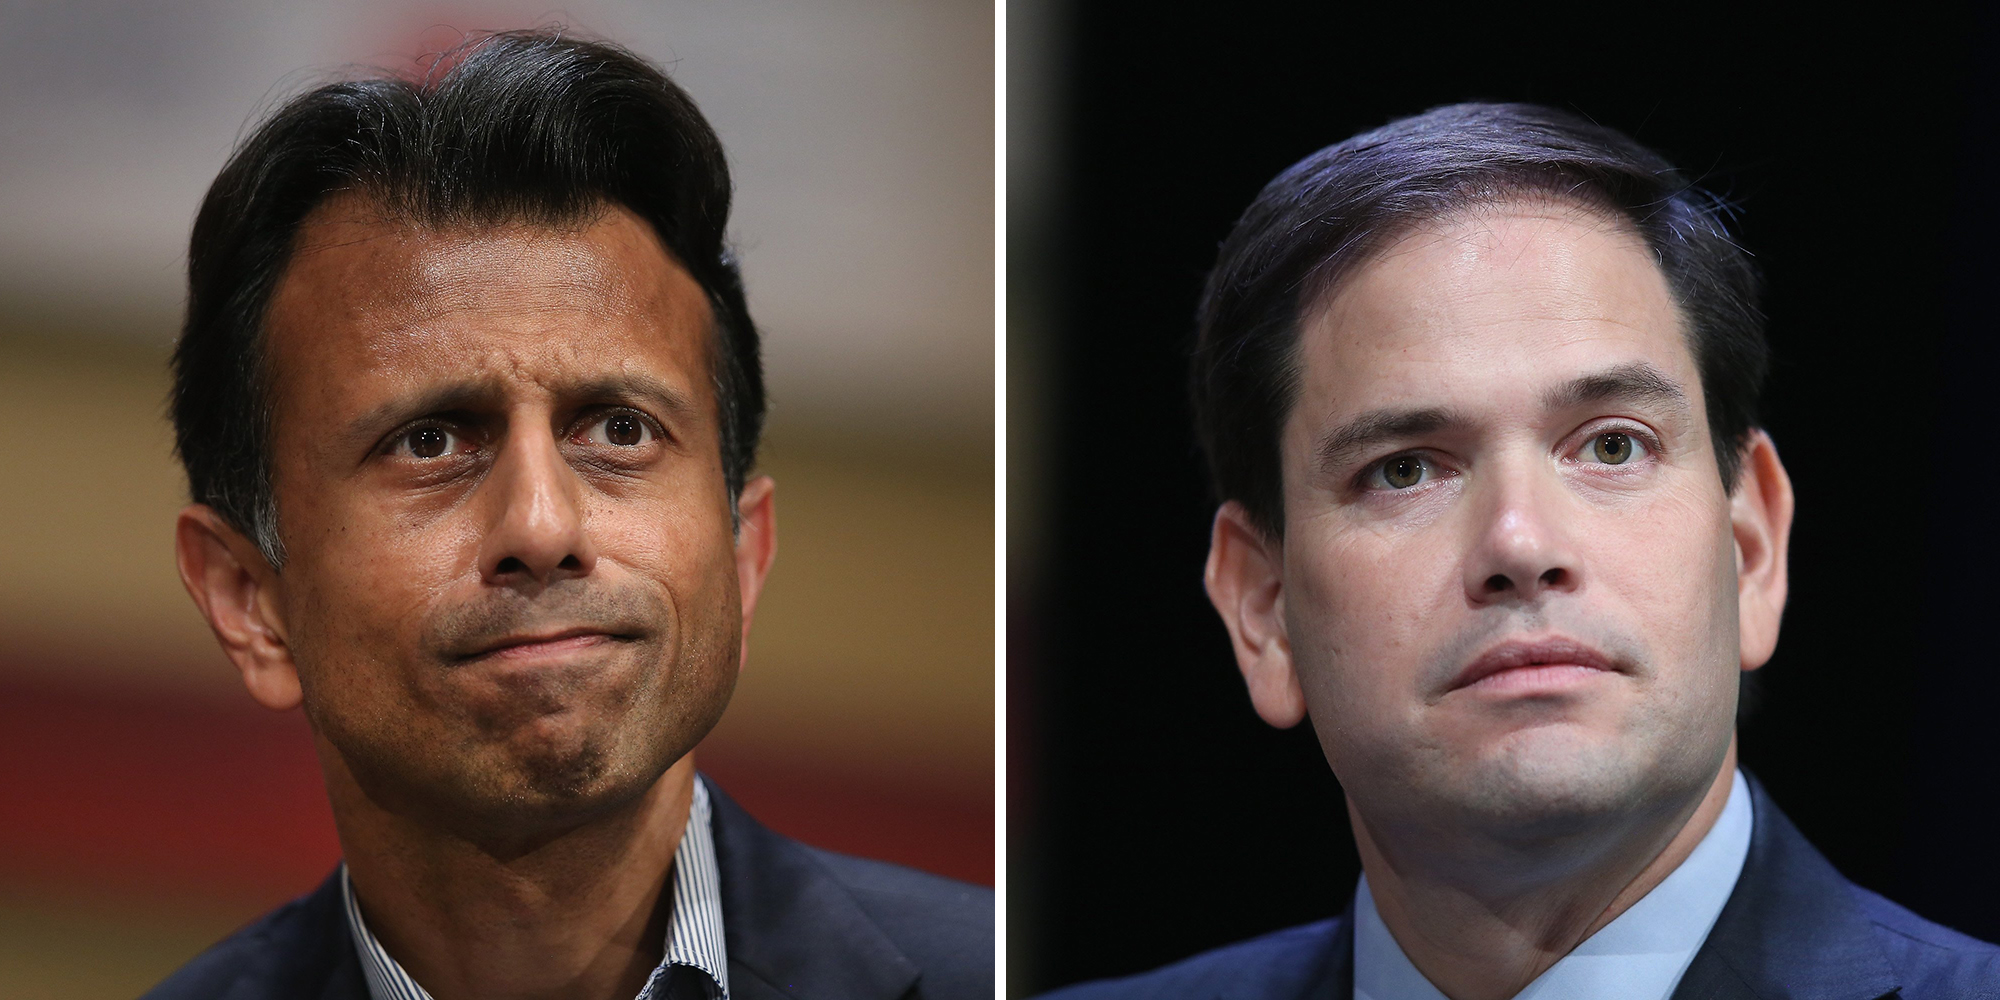 GOP's Turmoil Raises Questions for Candidates Born to Immigrants